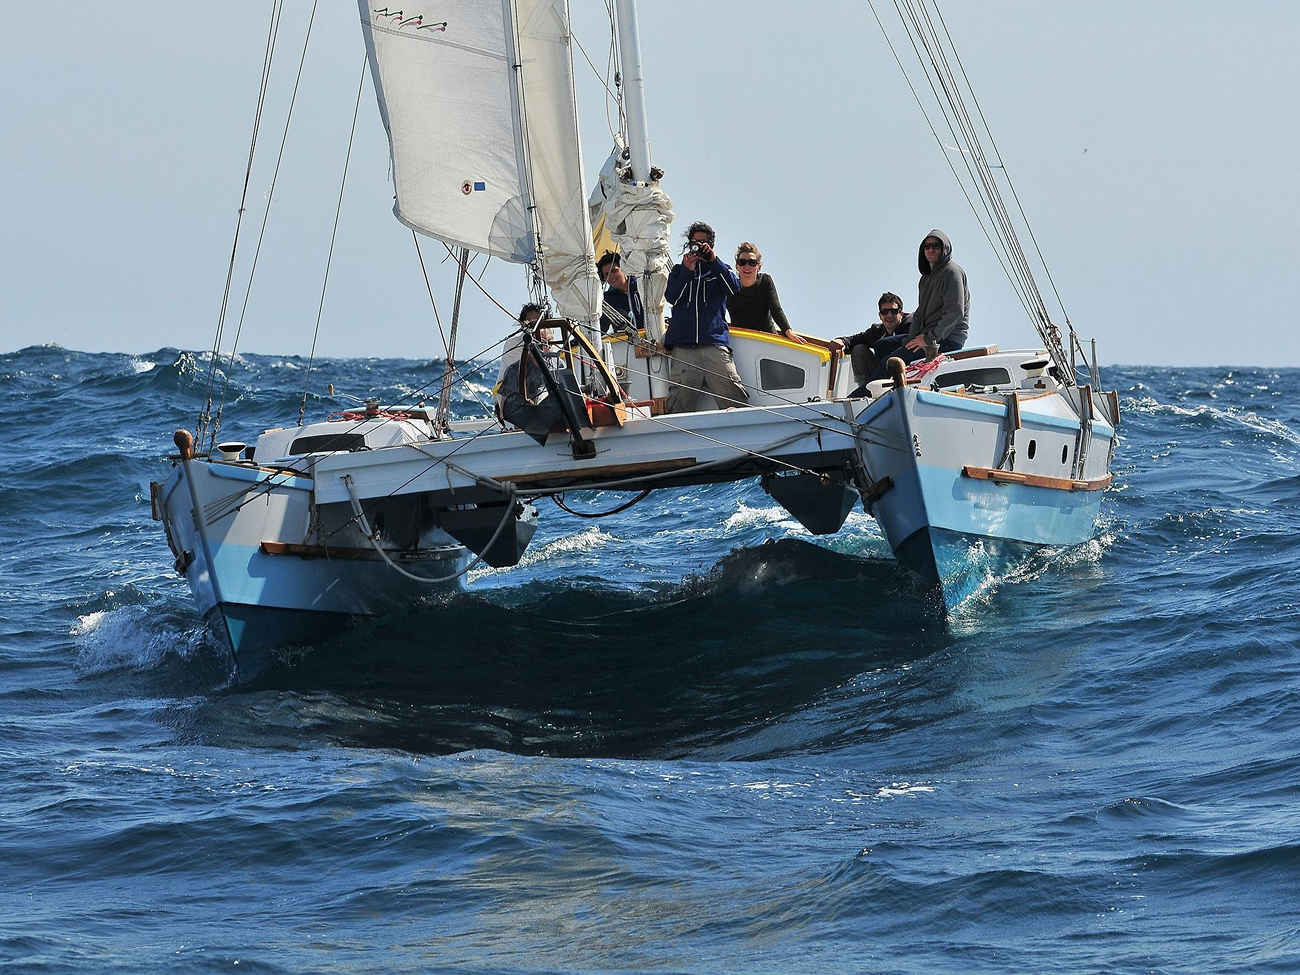 White and blue Tiki 38 sailing on choppy seas, six people aboard